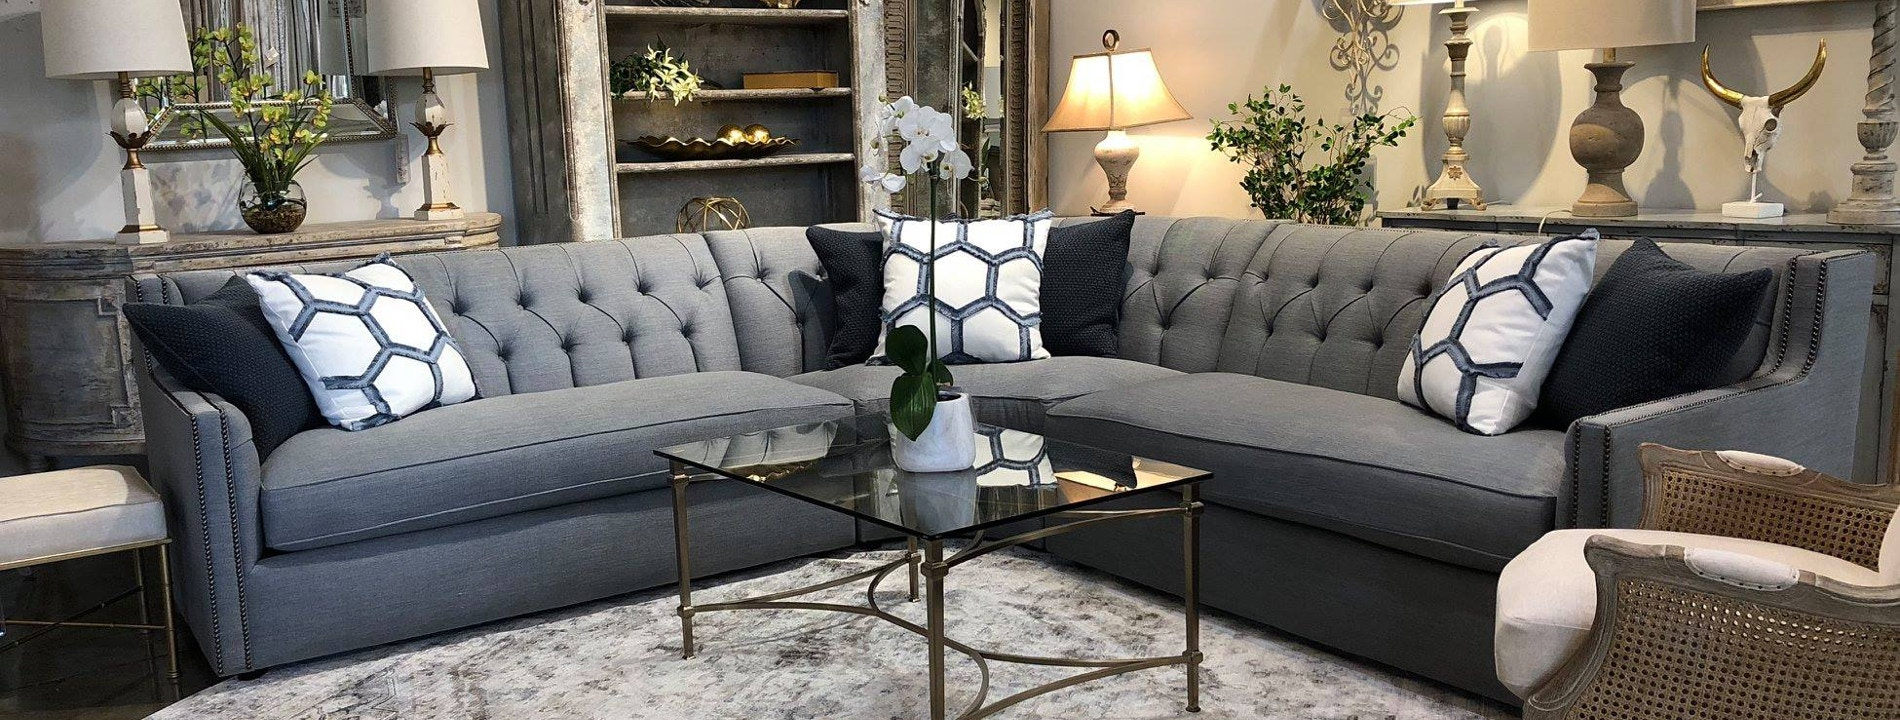 American Factory Direct Furniture All About Price All